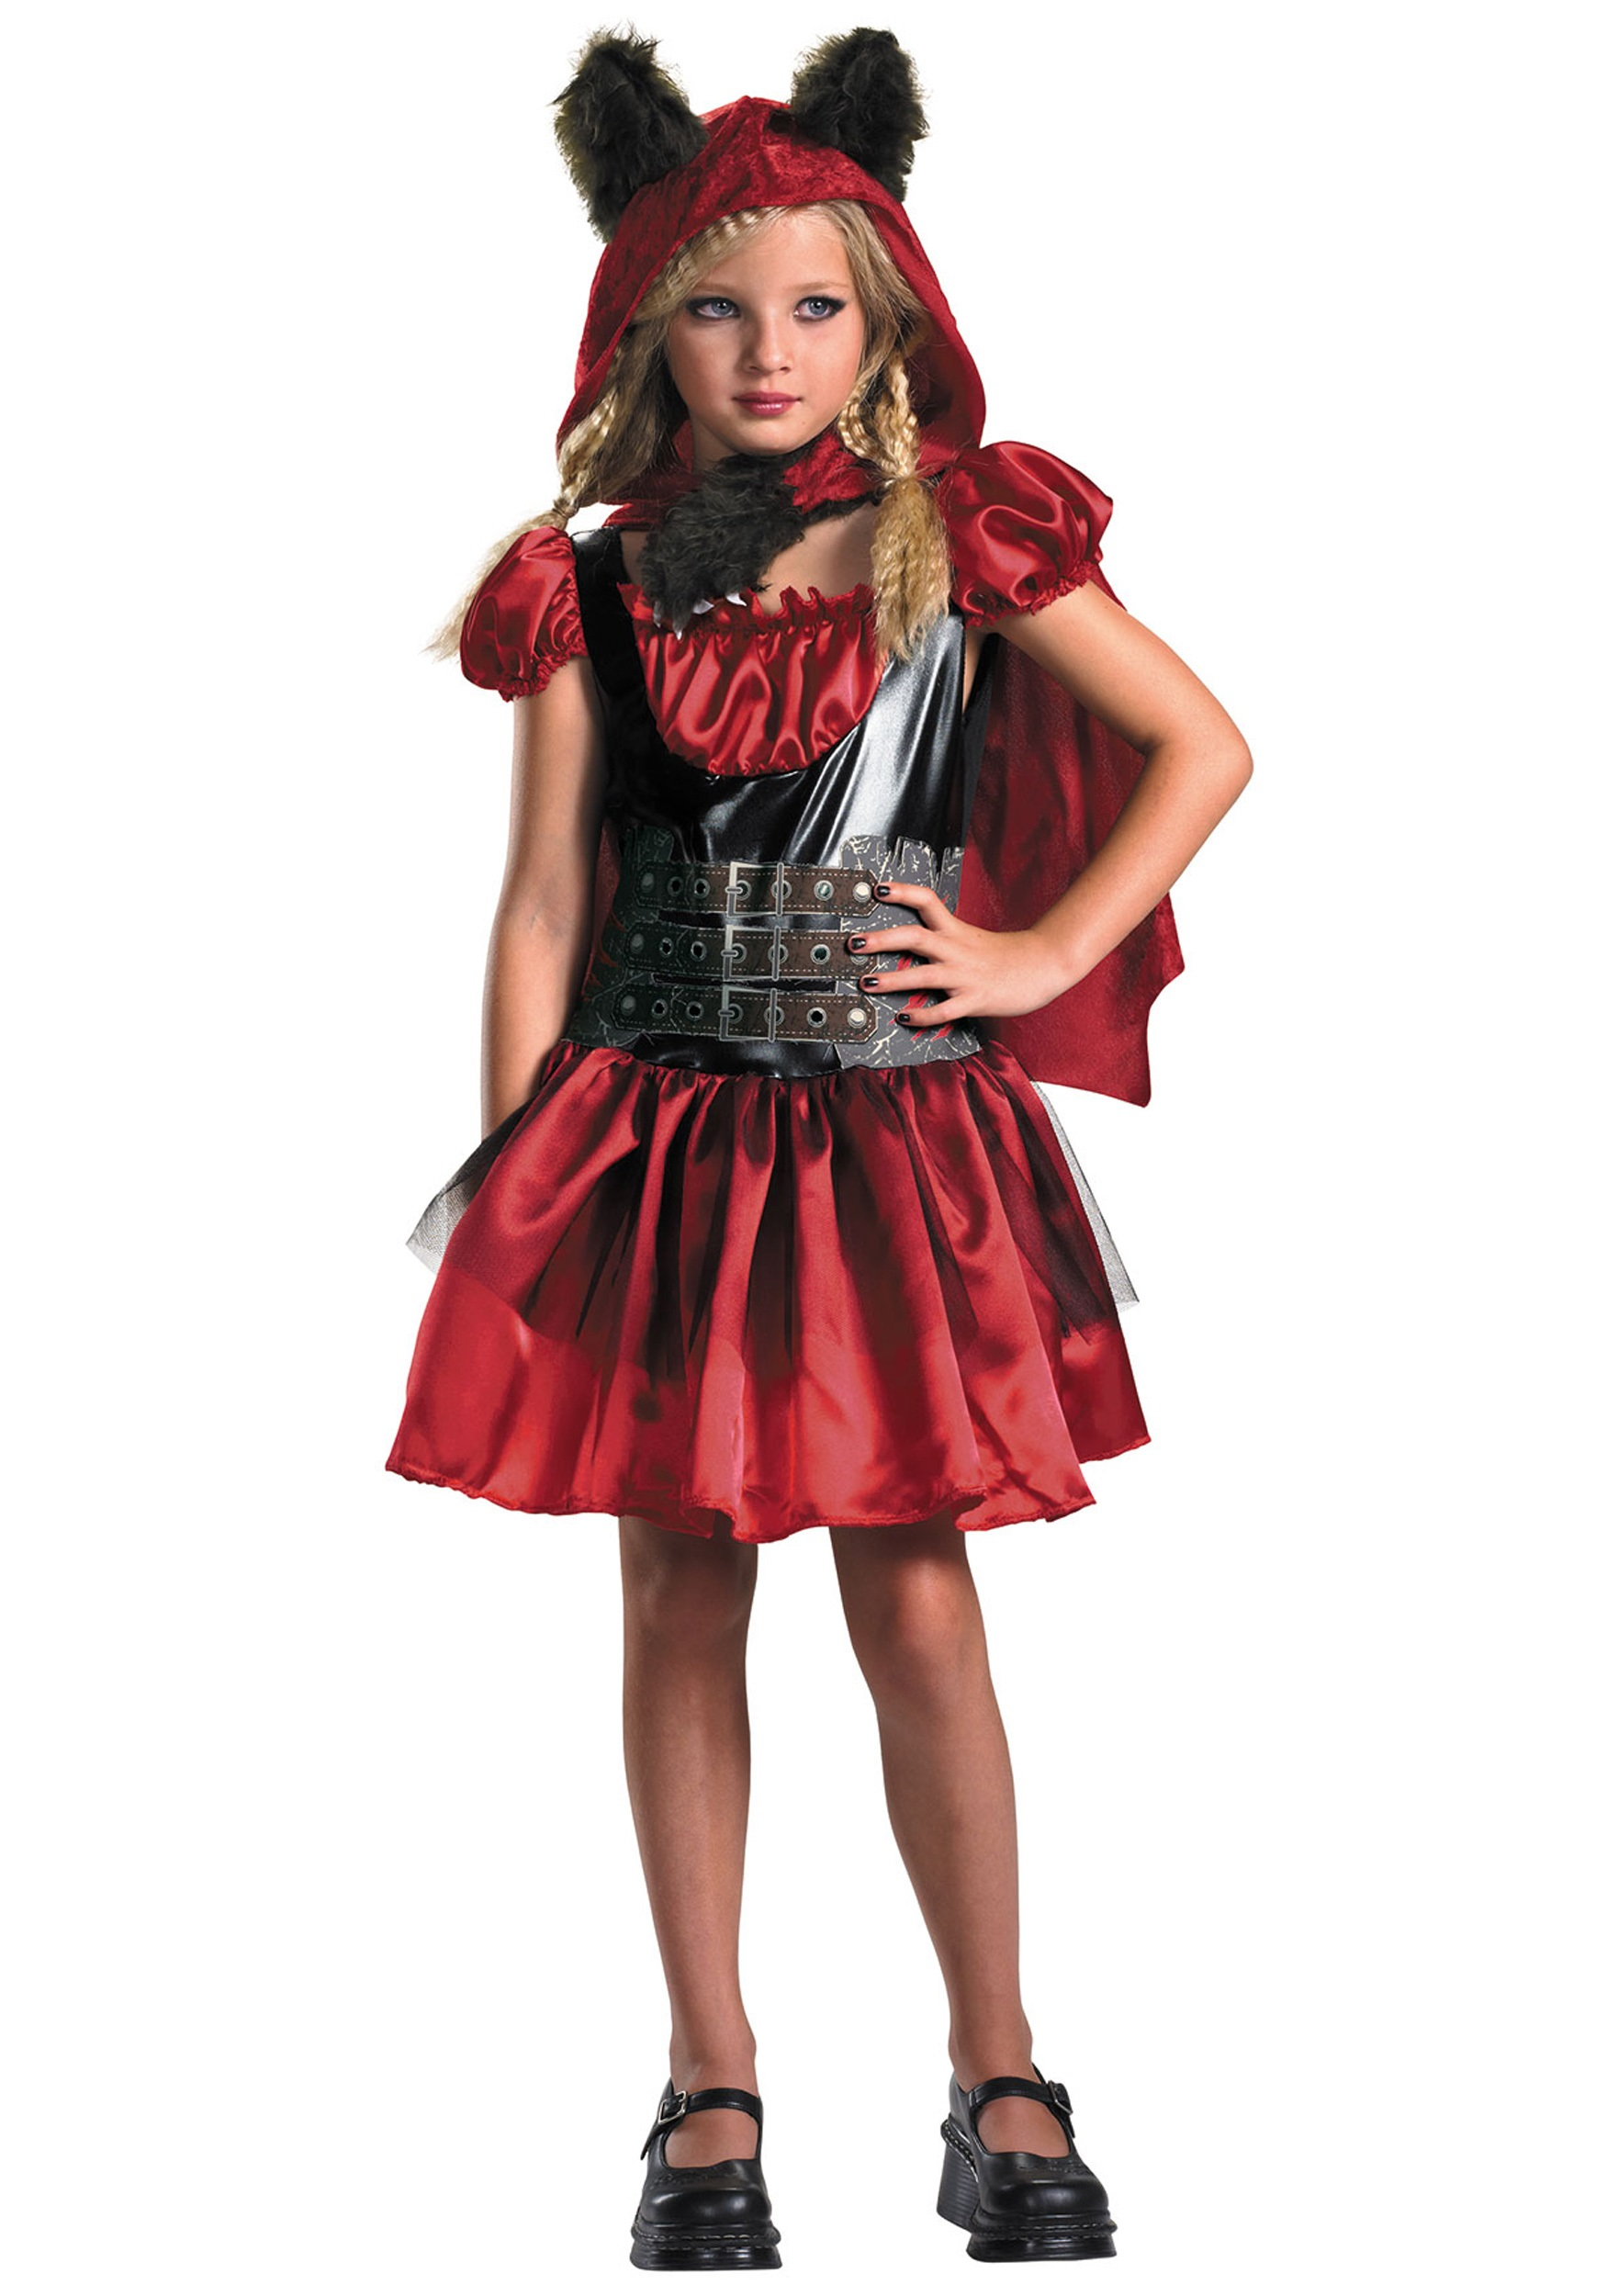 Girls Red Riding Rage Costume  sc 1 st  Halloween Costumes & Girls Red Riding Rage Costume - Halloween Costumes